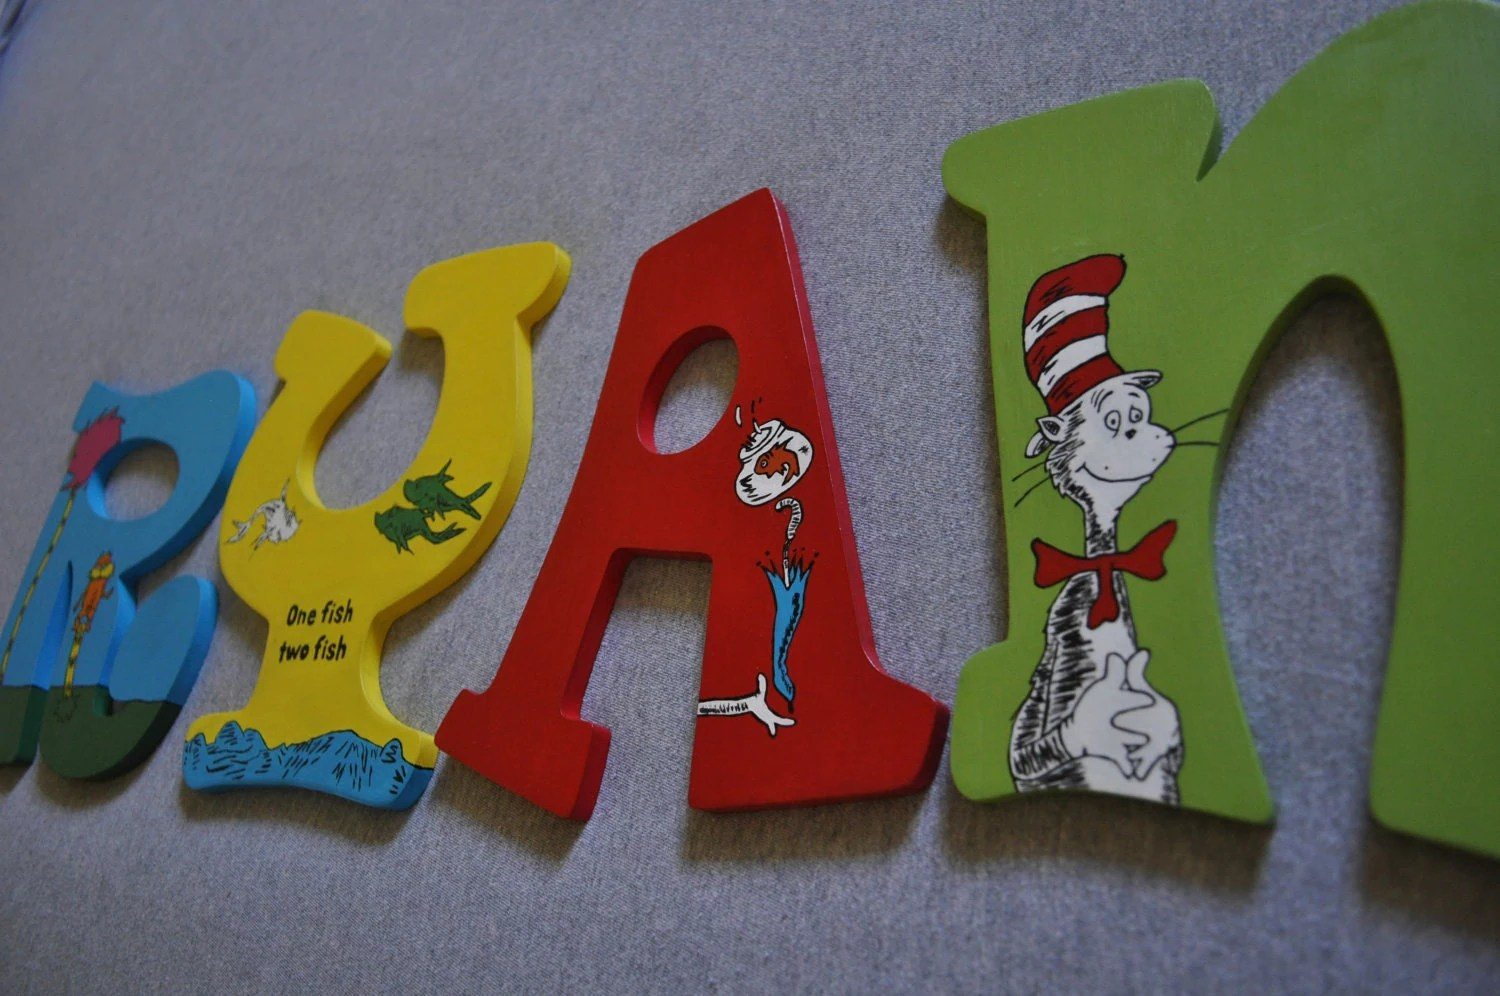 Dr Seuss Hand Painted Wooden Letters For Nursery Or Play Room